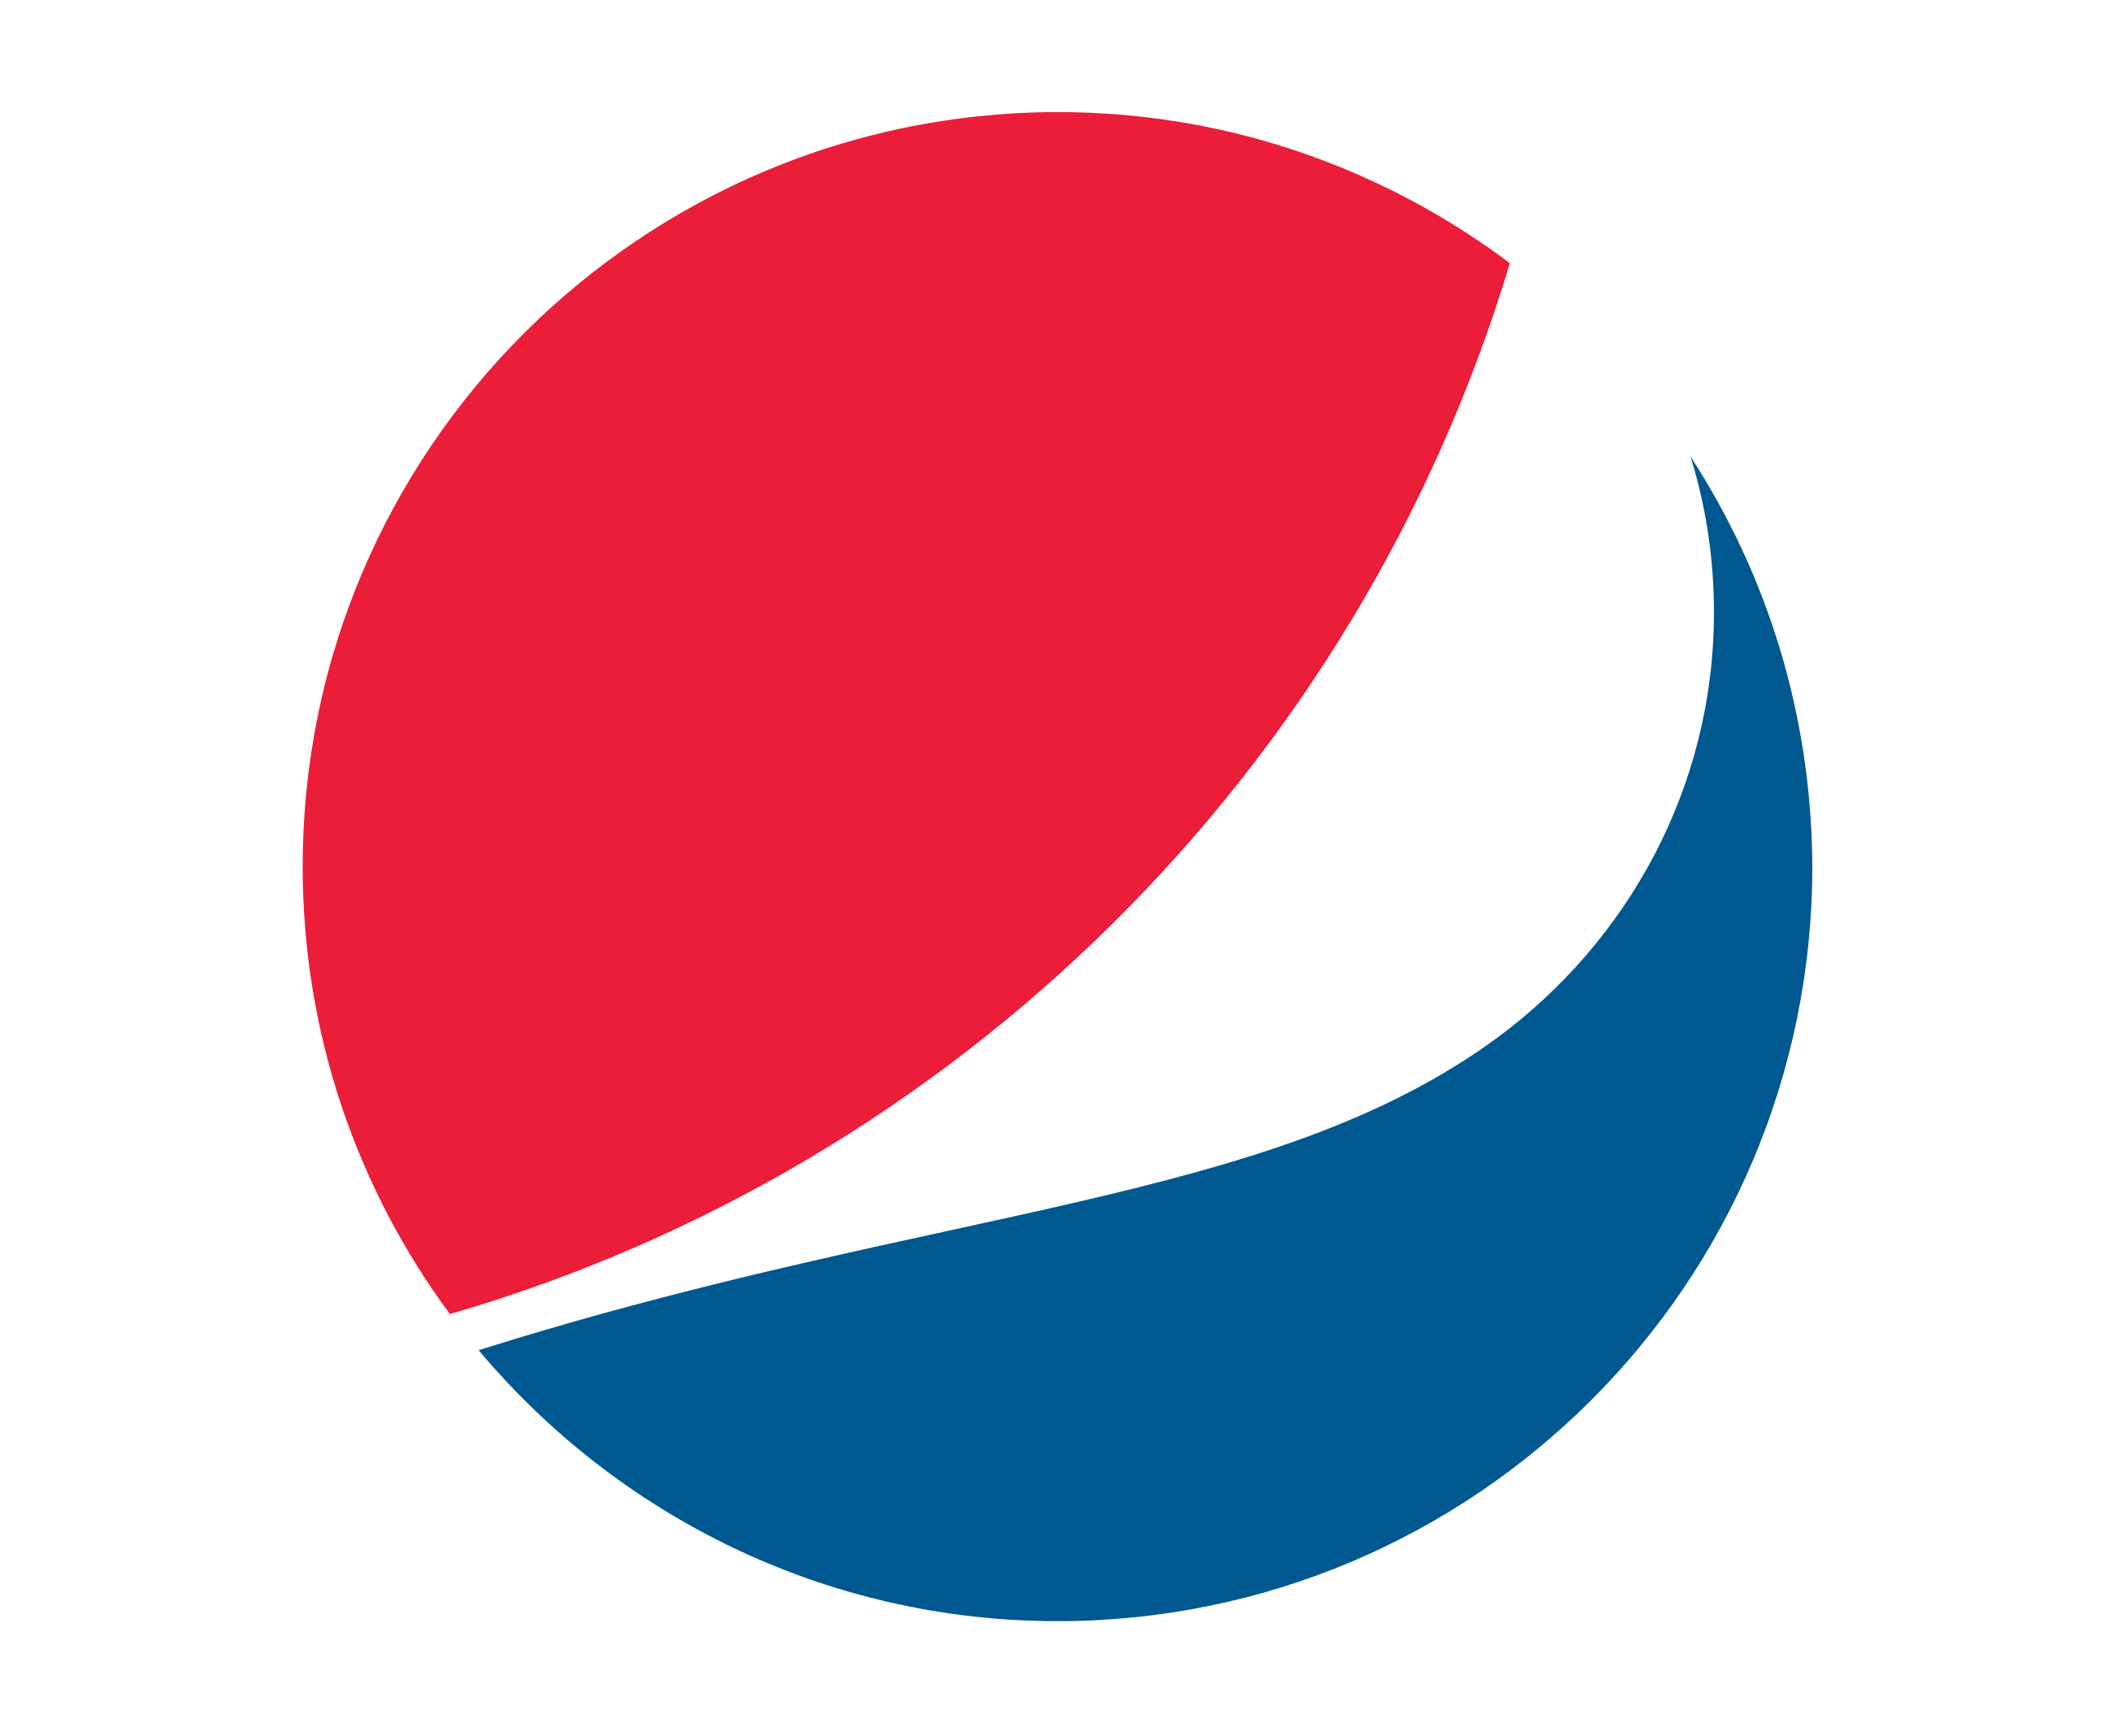 How much should a logo design cost - Pepsi Logo Cost: $1 Million